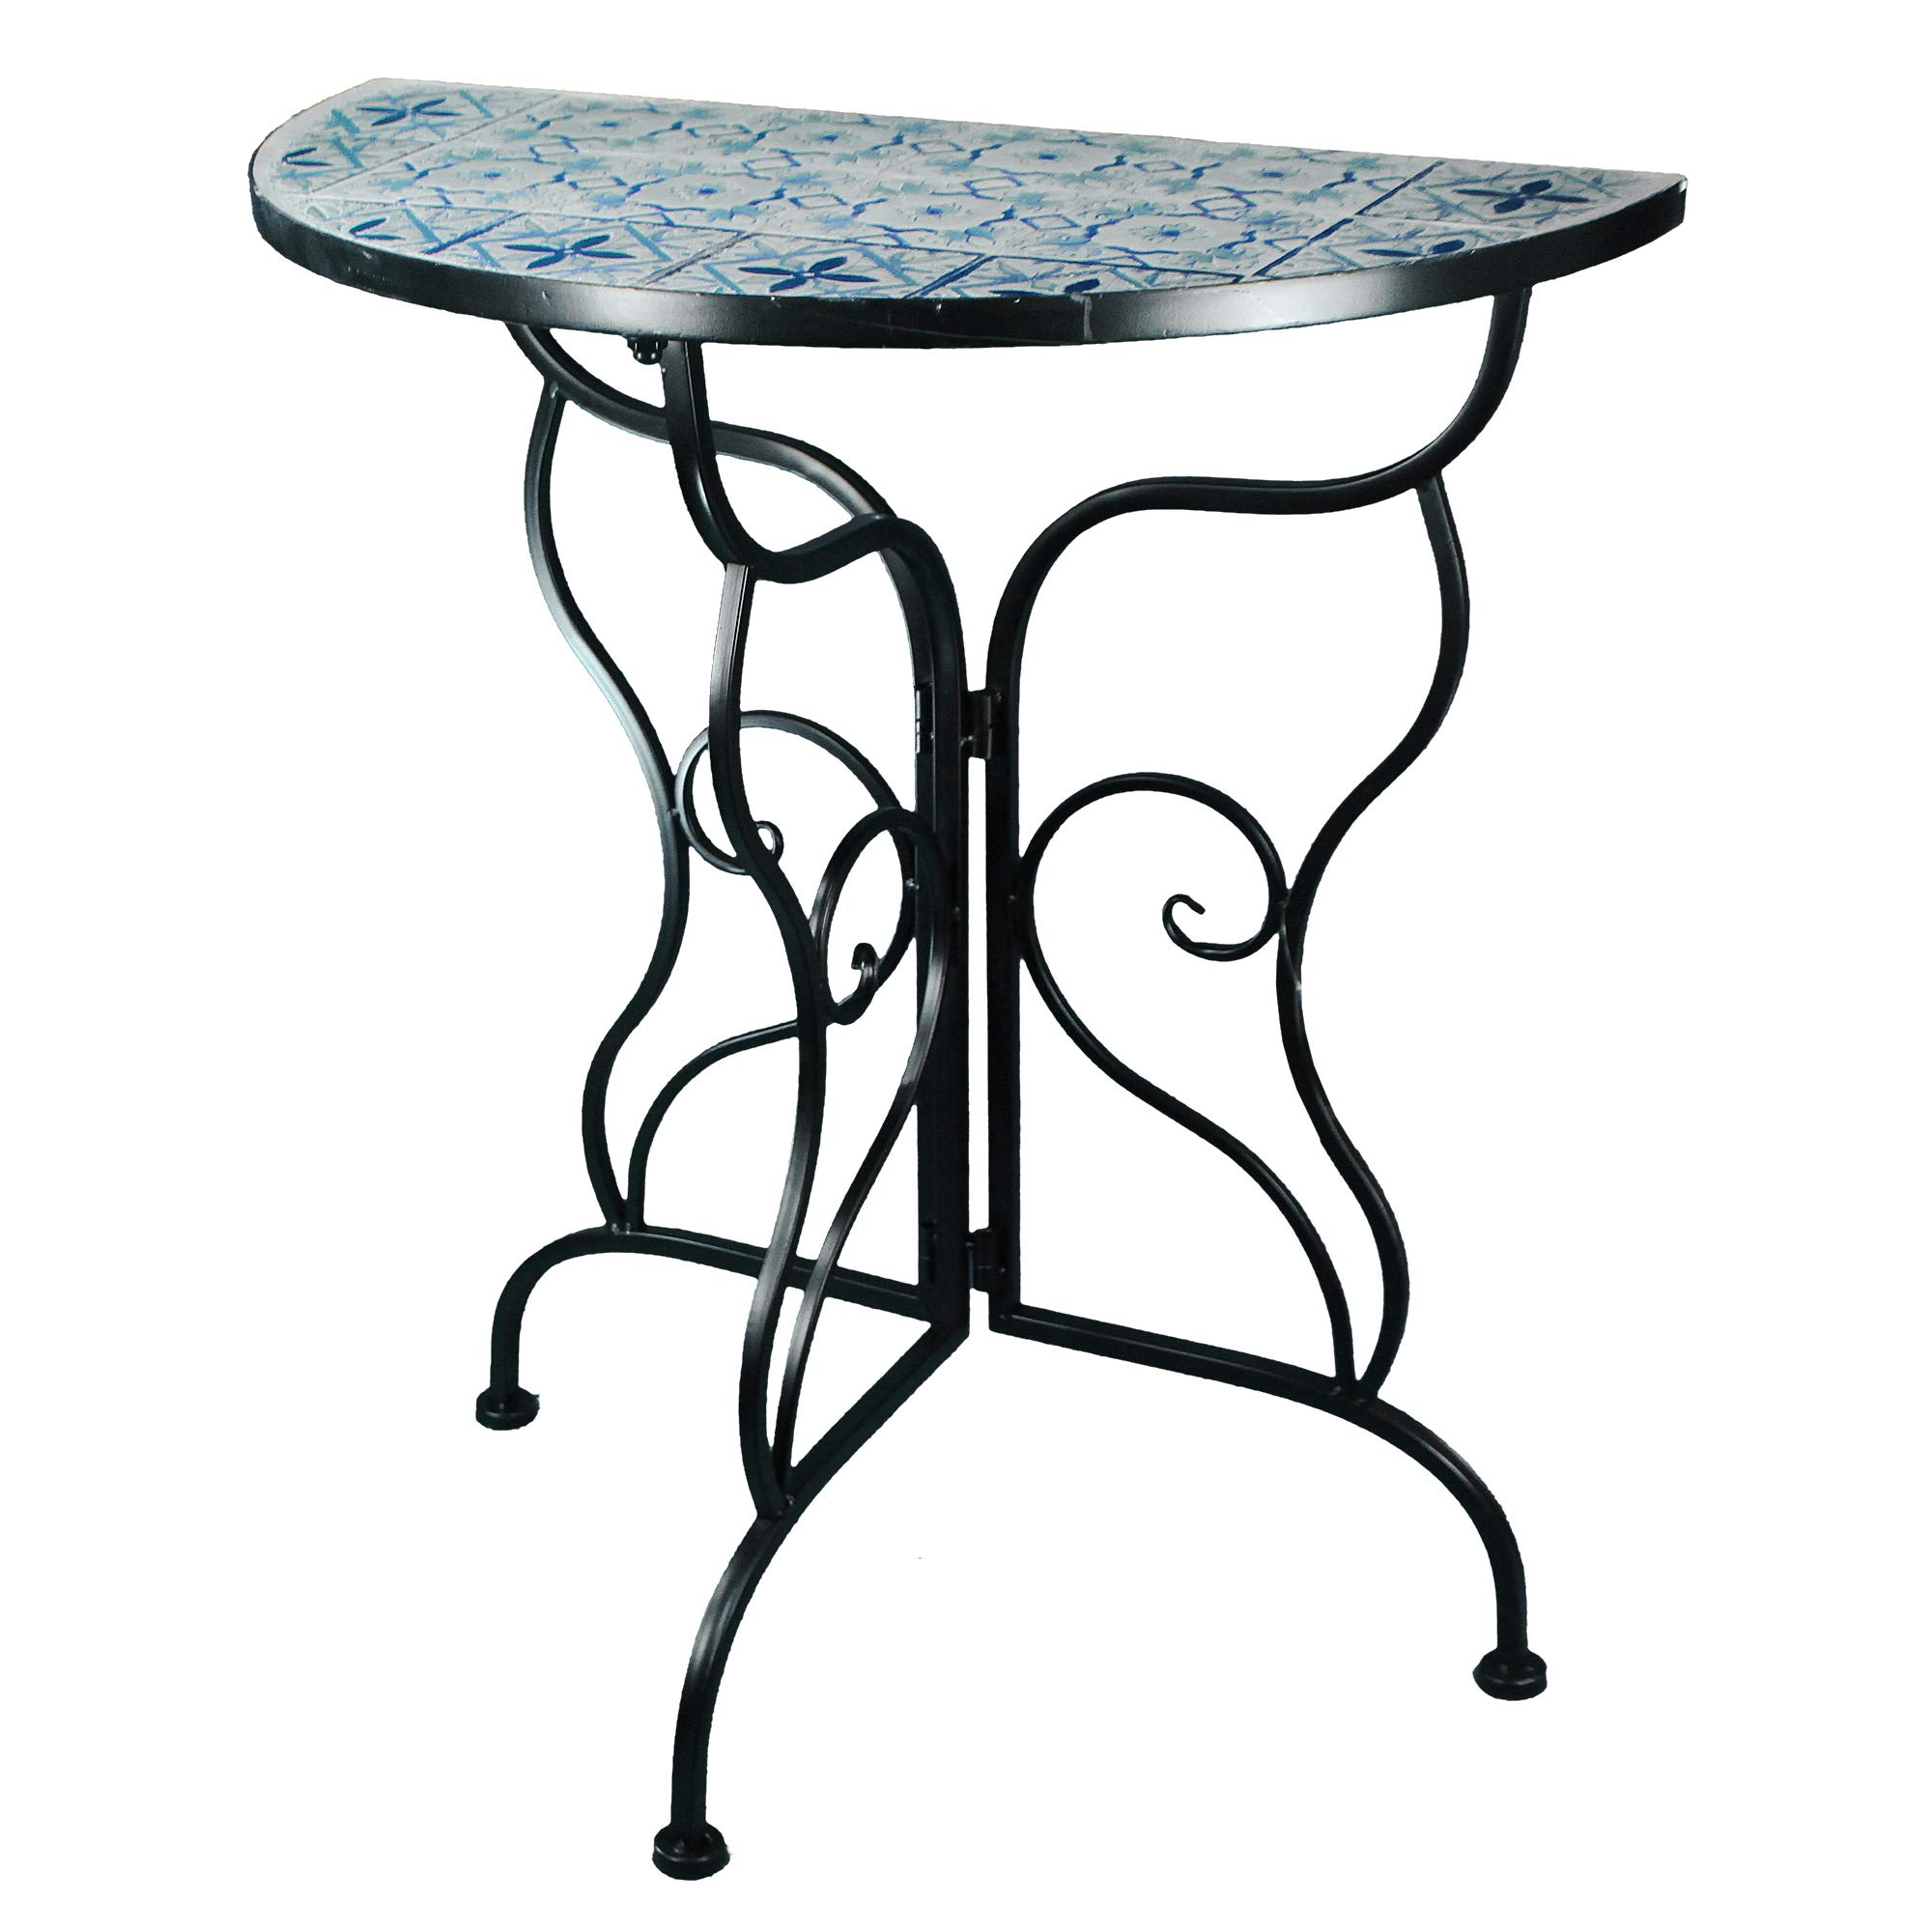 Essential Décor & Beyond Console Table Blue, White and Black